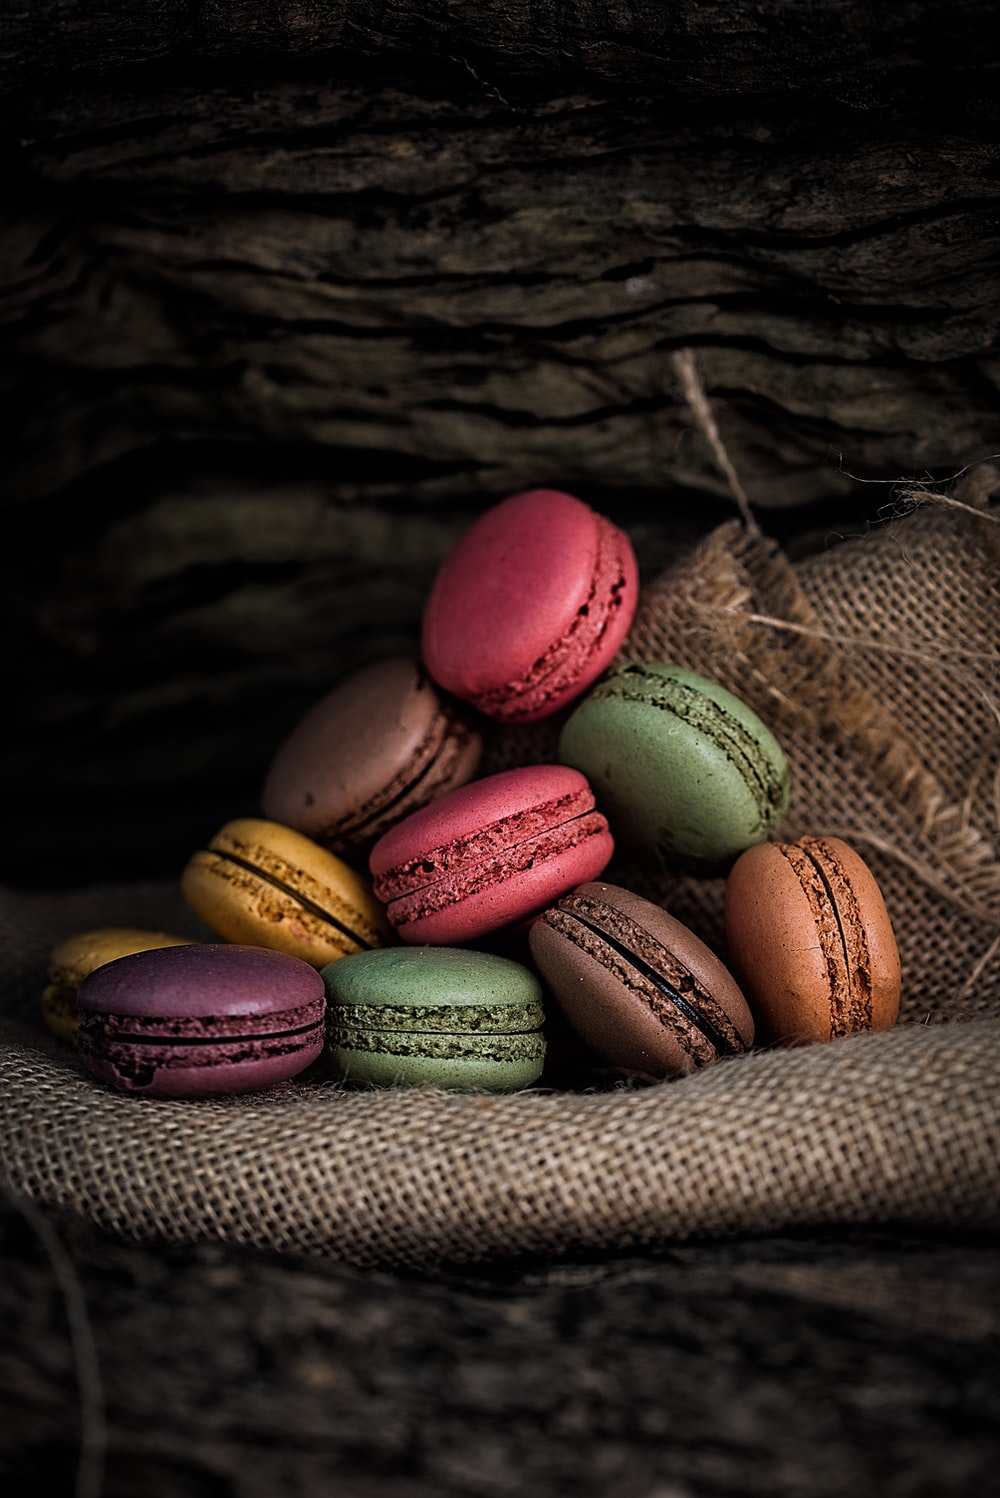 French macaroons on gray textile